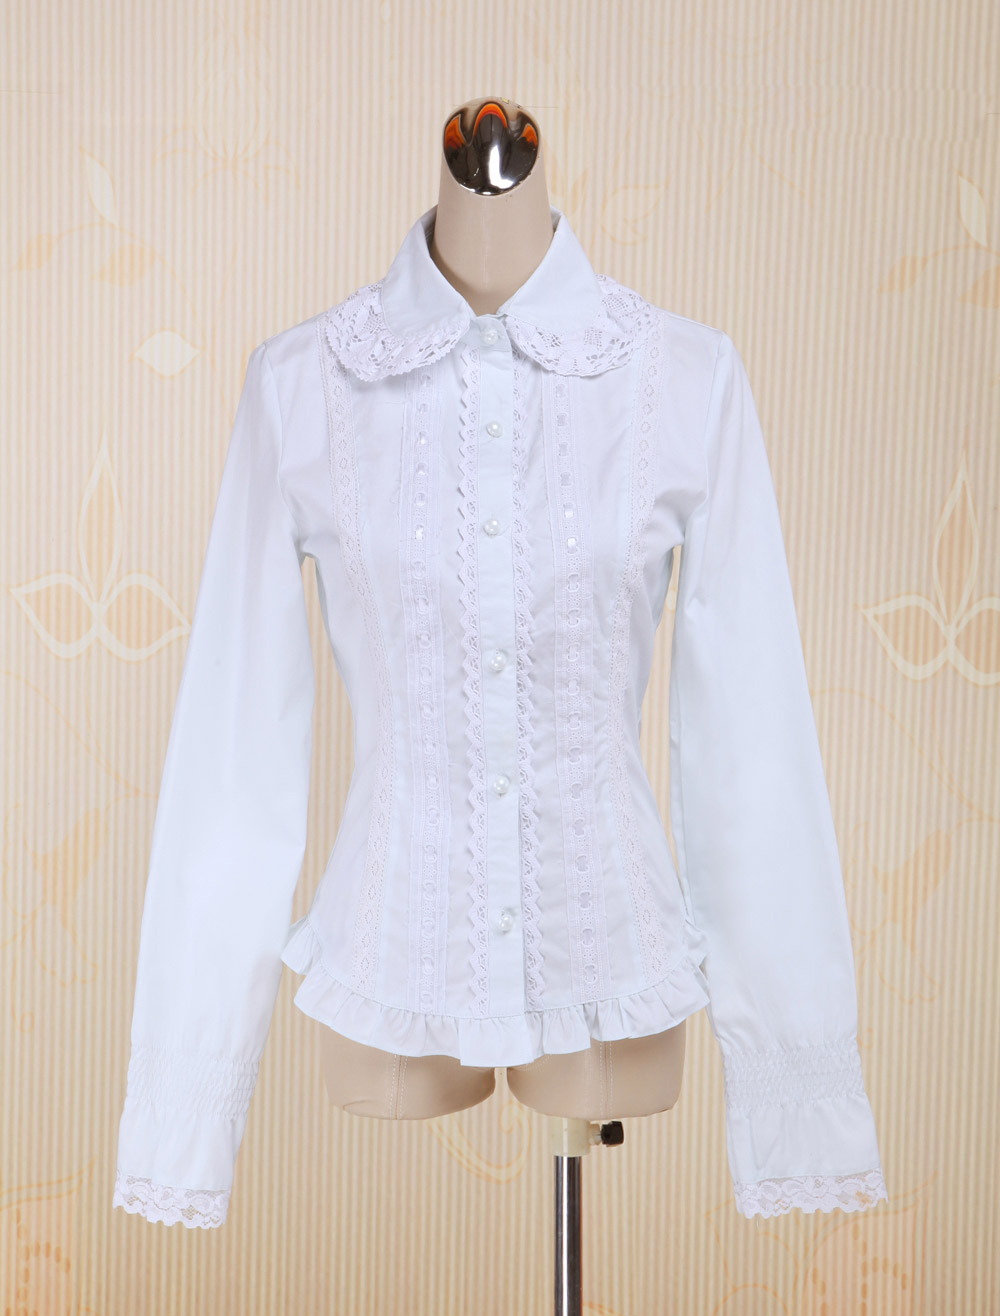 Buy White Cotton Lolita Blouse Long Sleeves Lace Trim Turn-down Collar for $42.29 in Milanoo store